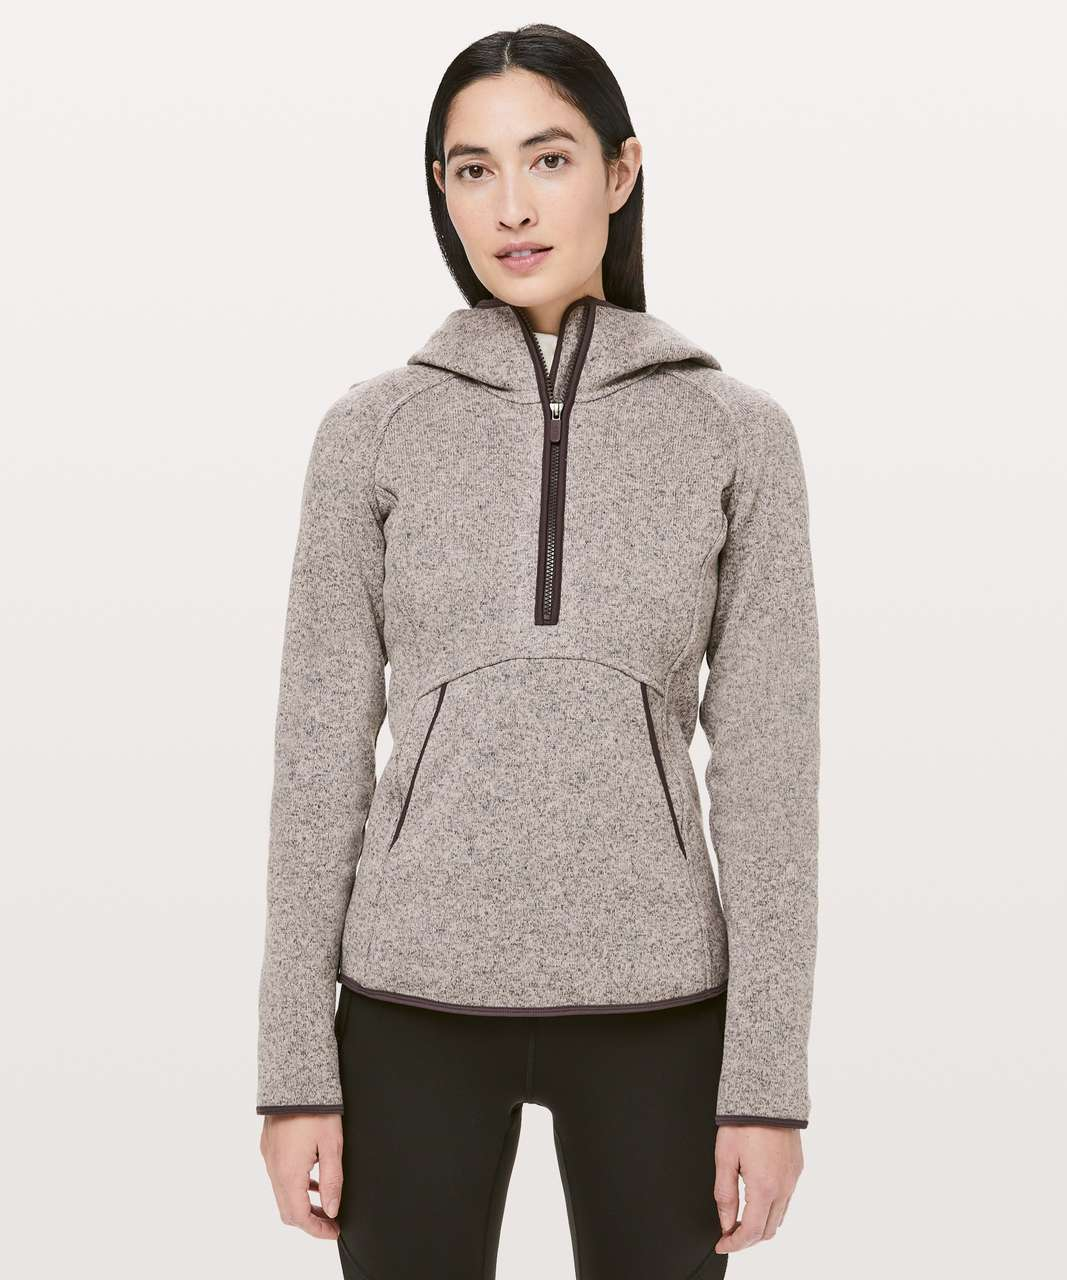 Lululemon Fleece & Thank You Pullover - Heathered Smoky Blush